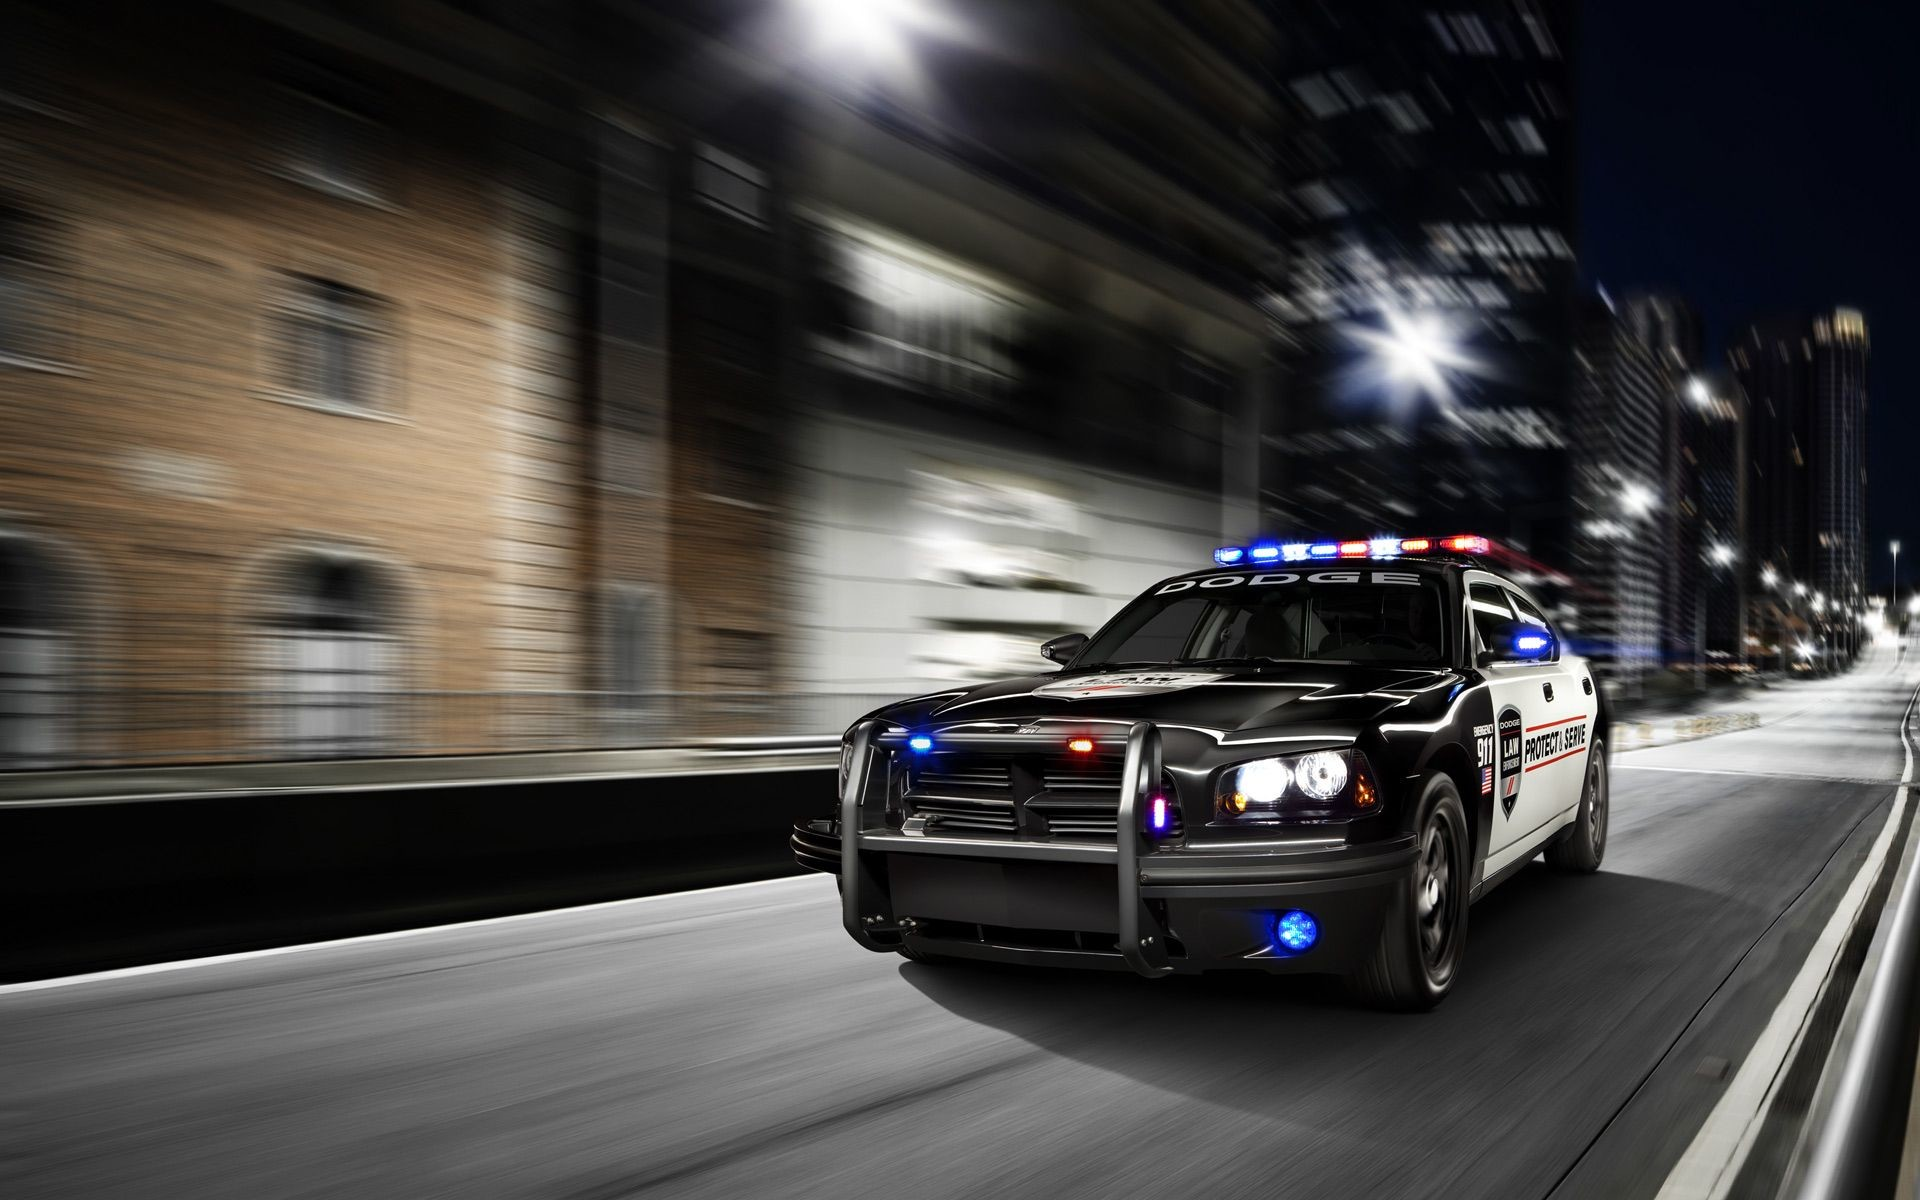 Res: 1920x1200, Dodge Charger Police Car Wallpaper